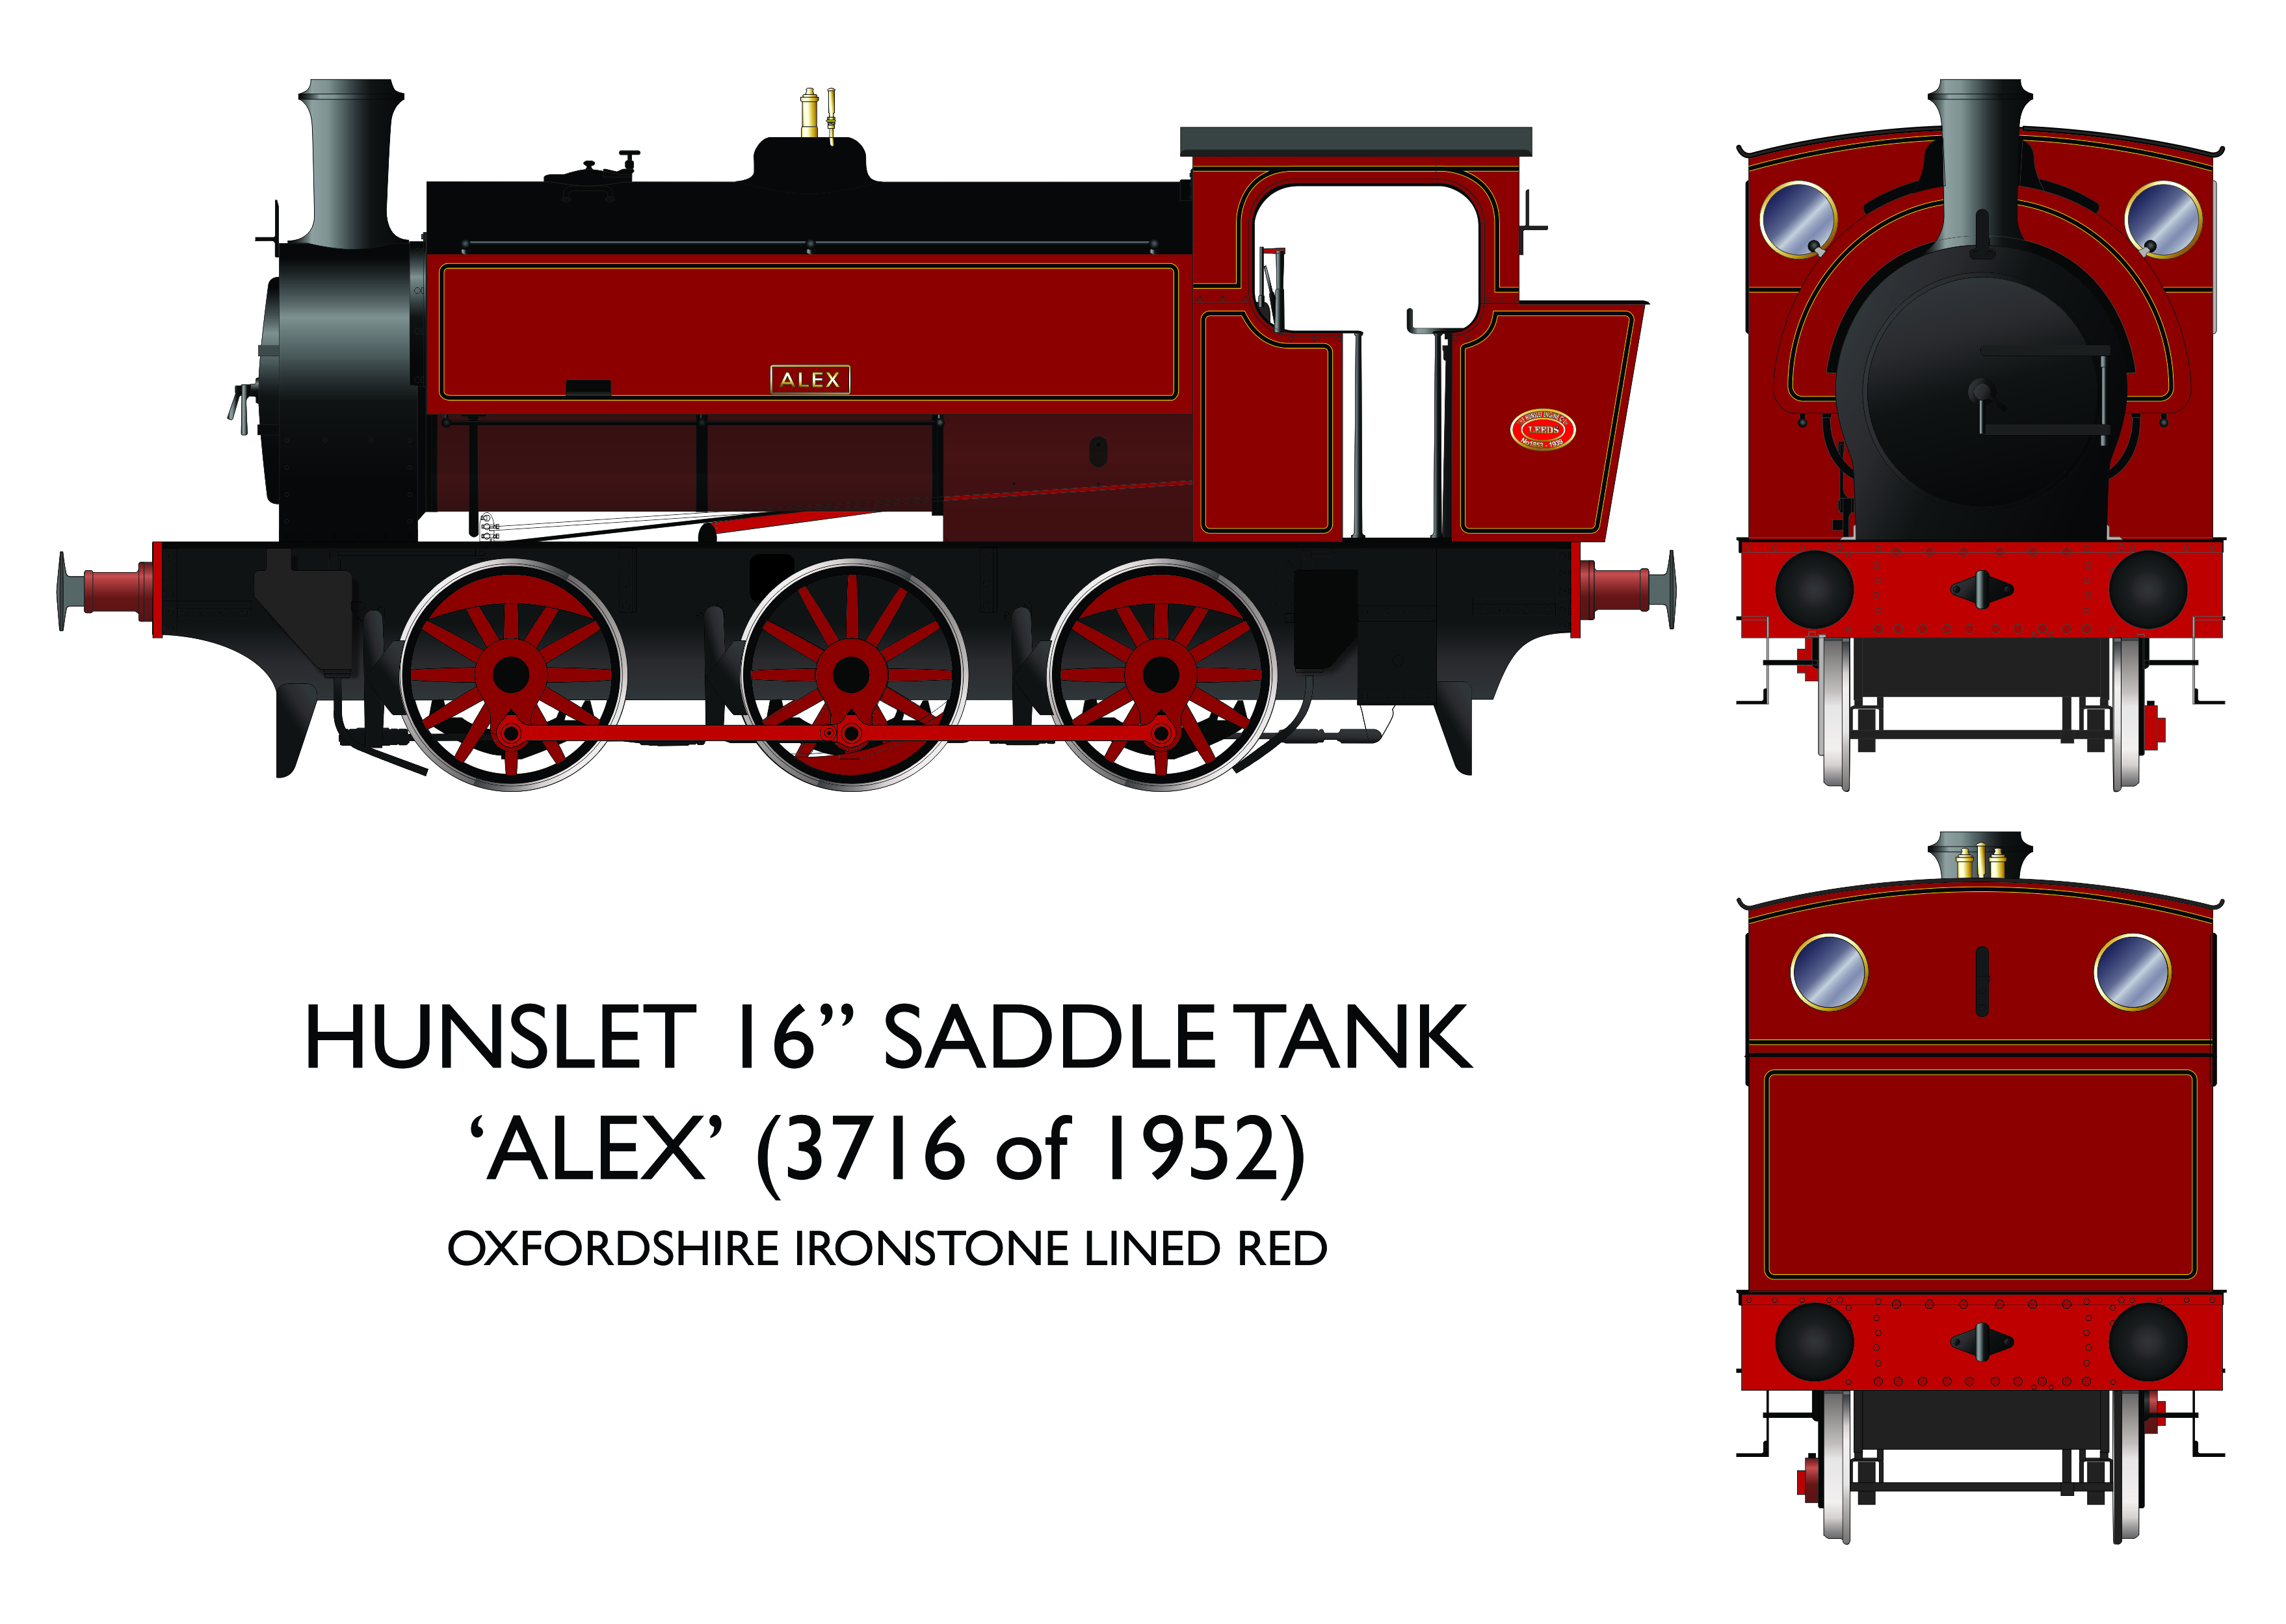 903001 Rapido 16in Hunslet Alex Oxfordshire Ironstone Lined Red